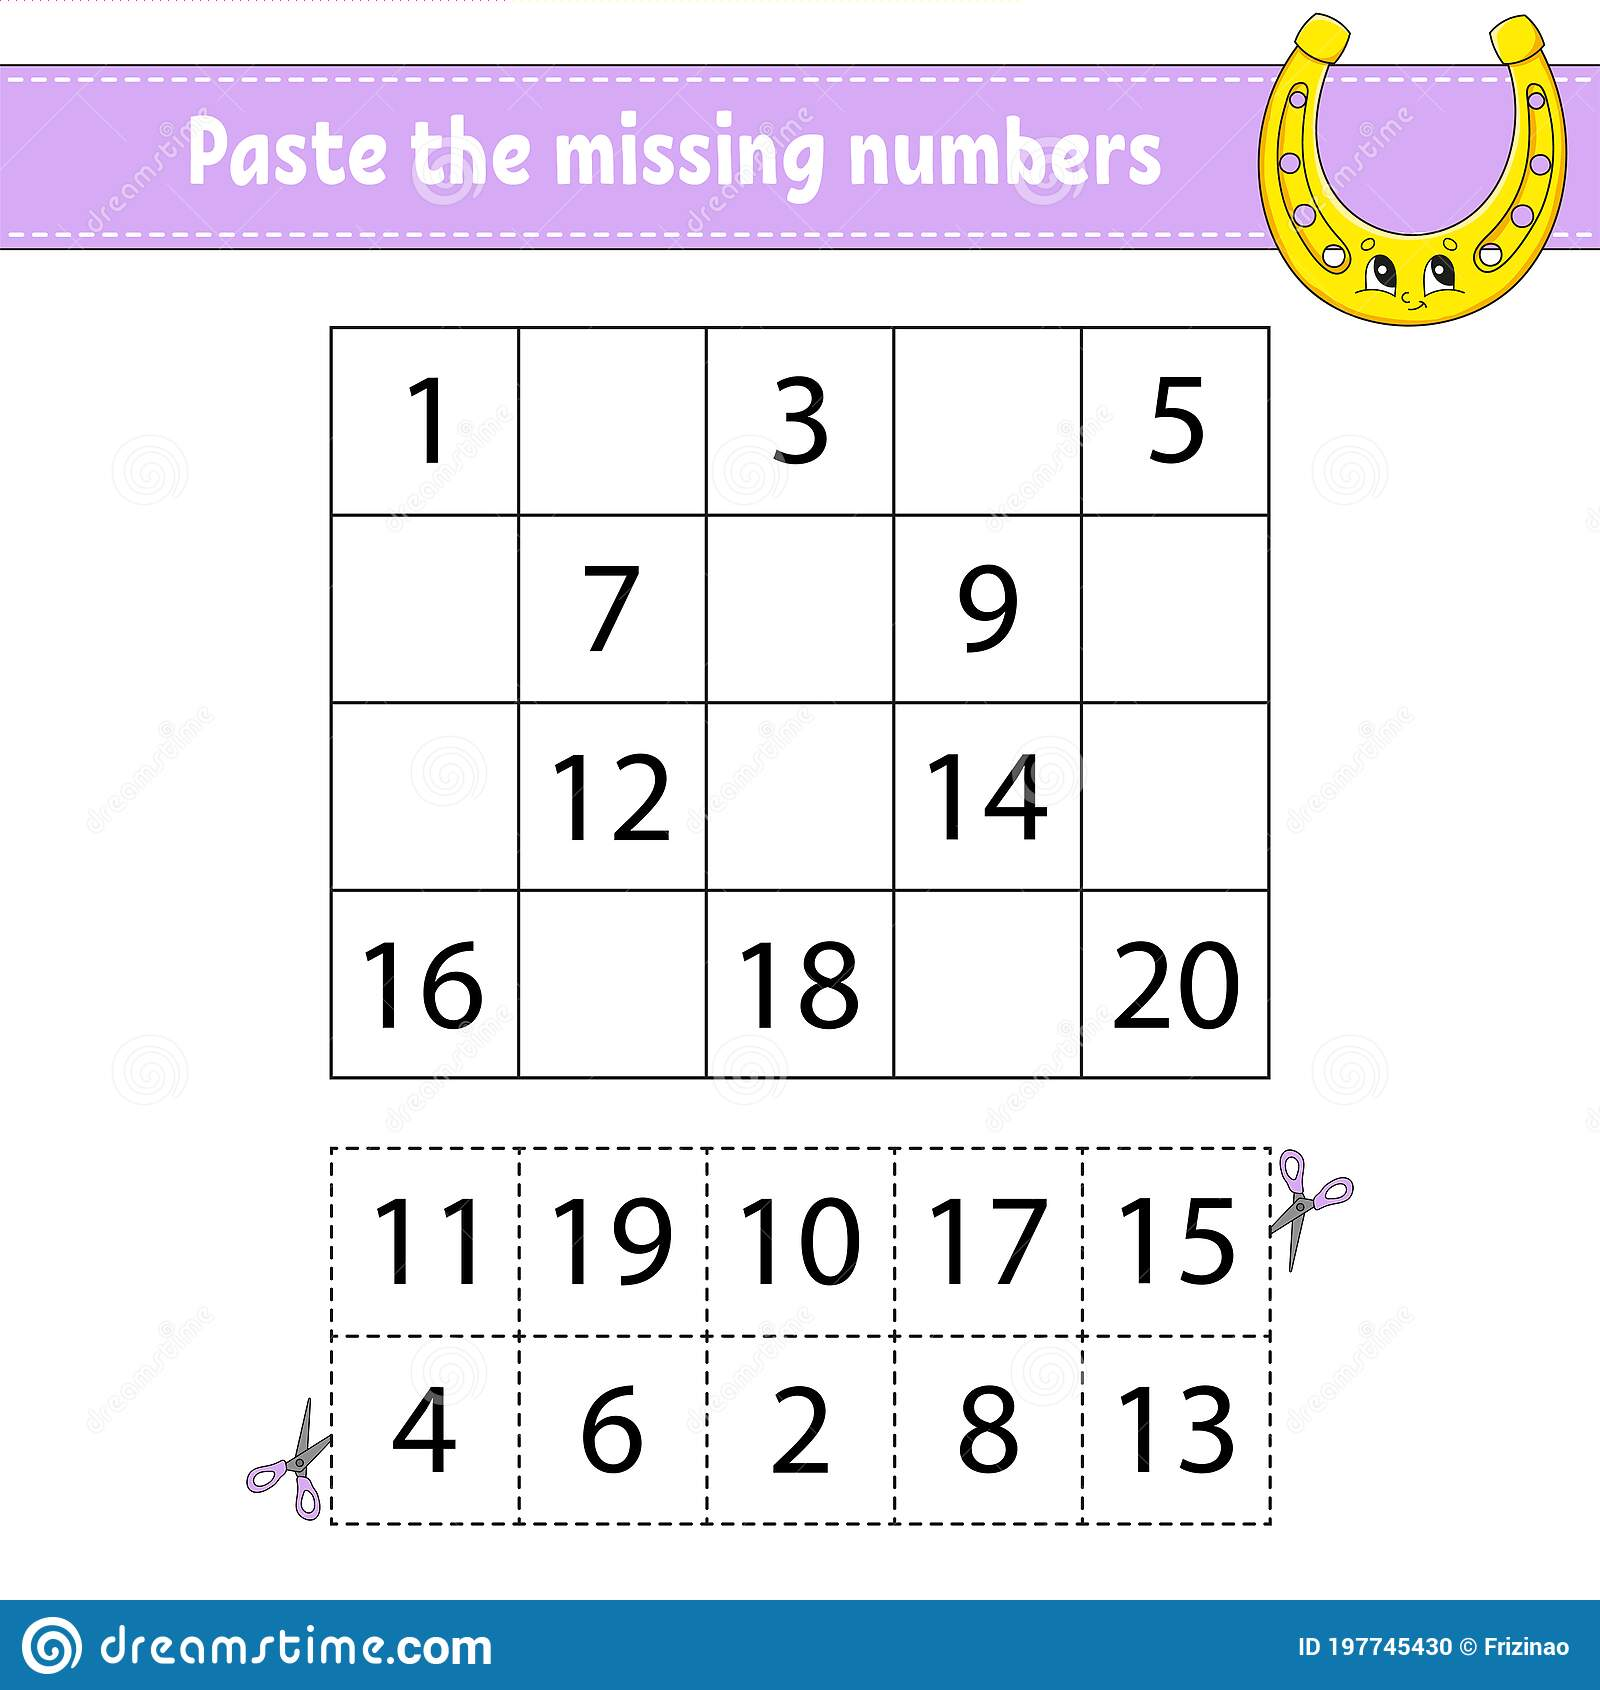 Paste The Missing Numbers 1 20 Game For Children